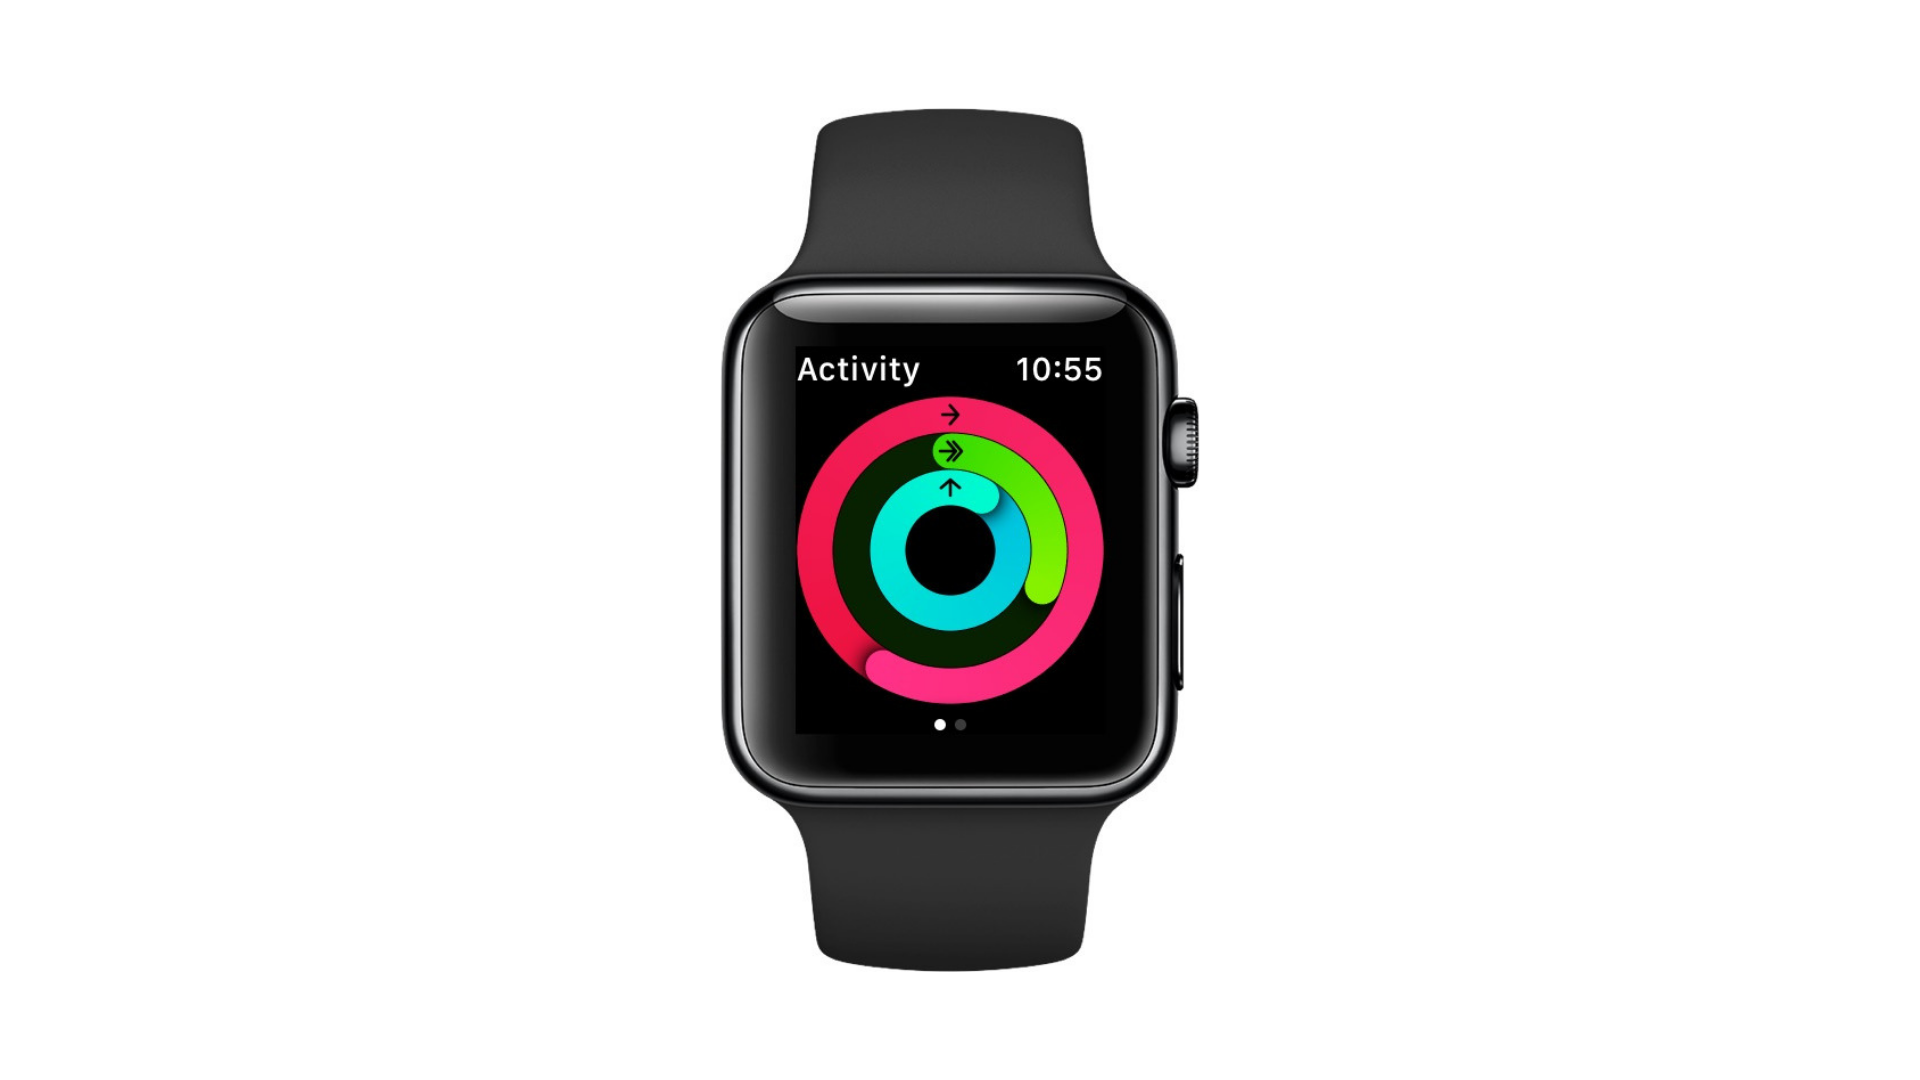 3: Exercising with Apple Watch